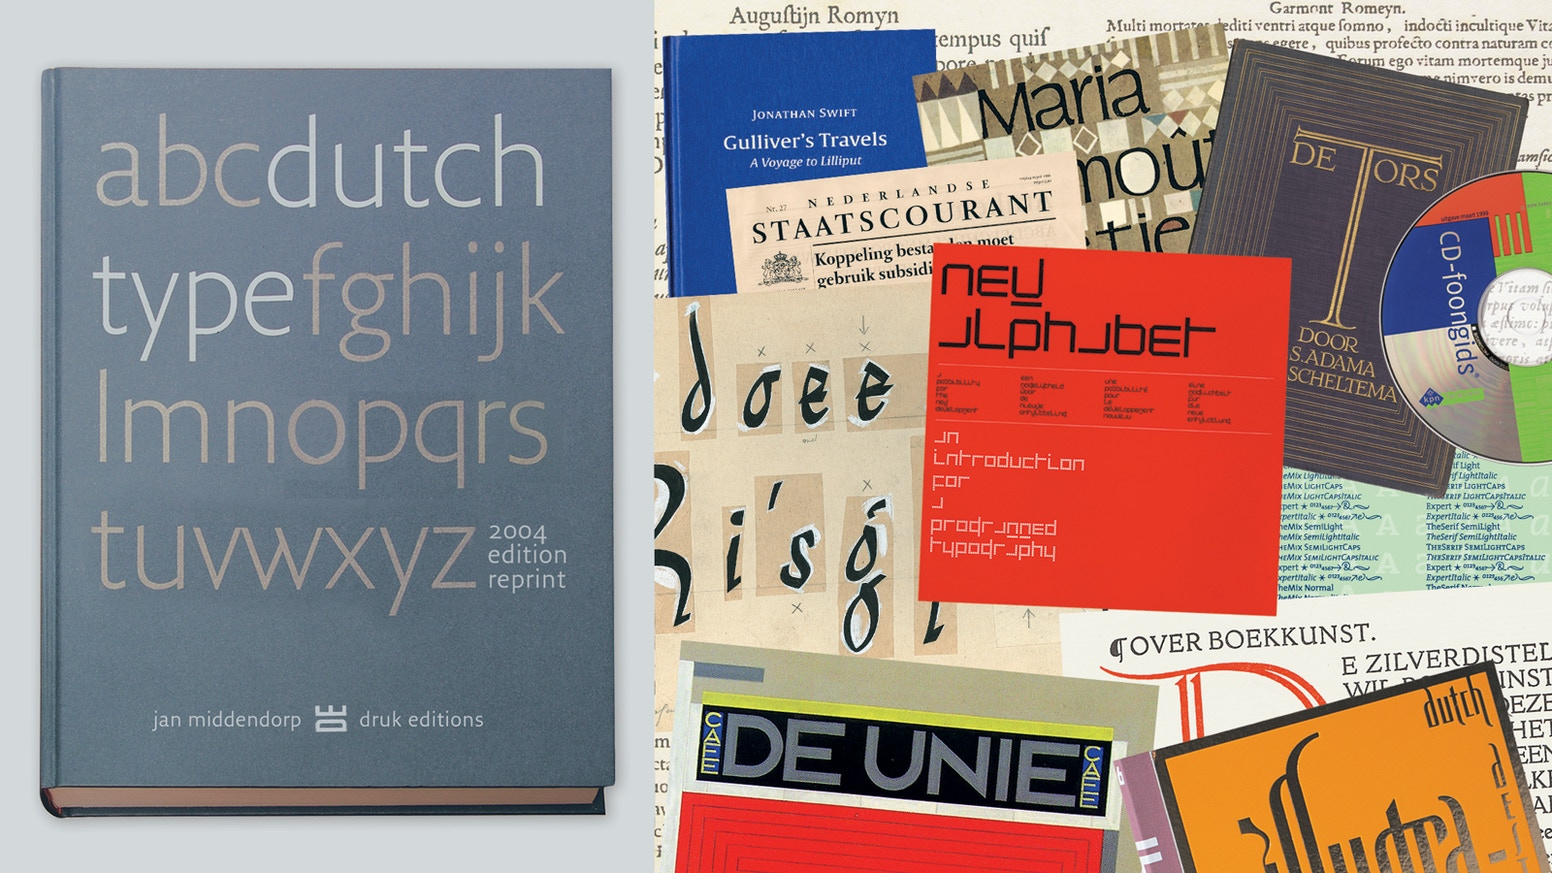 A long-awaited reprint of a modern classic on Dutch type design. Now available, with big thanks to Kickstarter and all backers. See a world-wide list of bookshops at drukeditions.com/#where